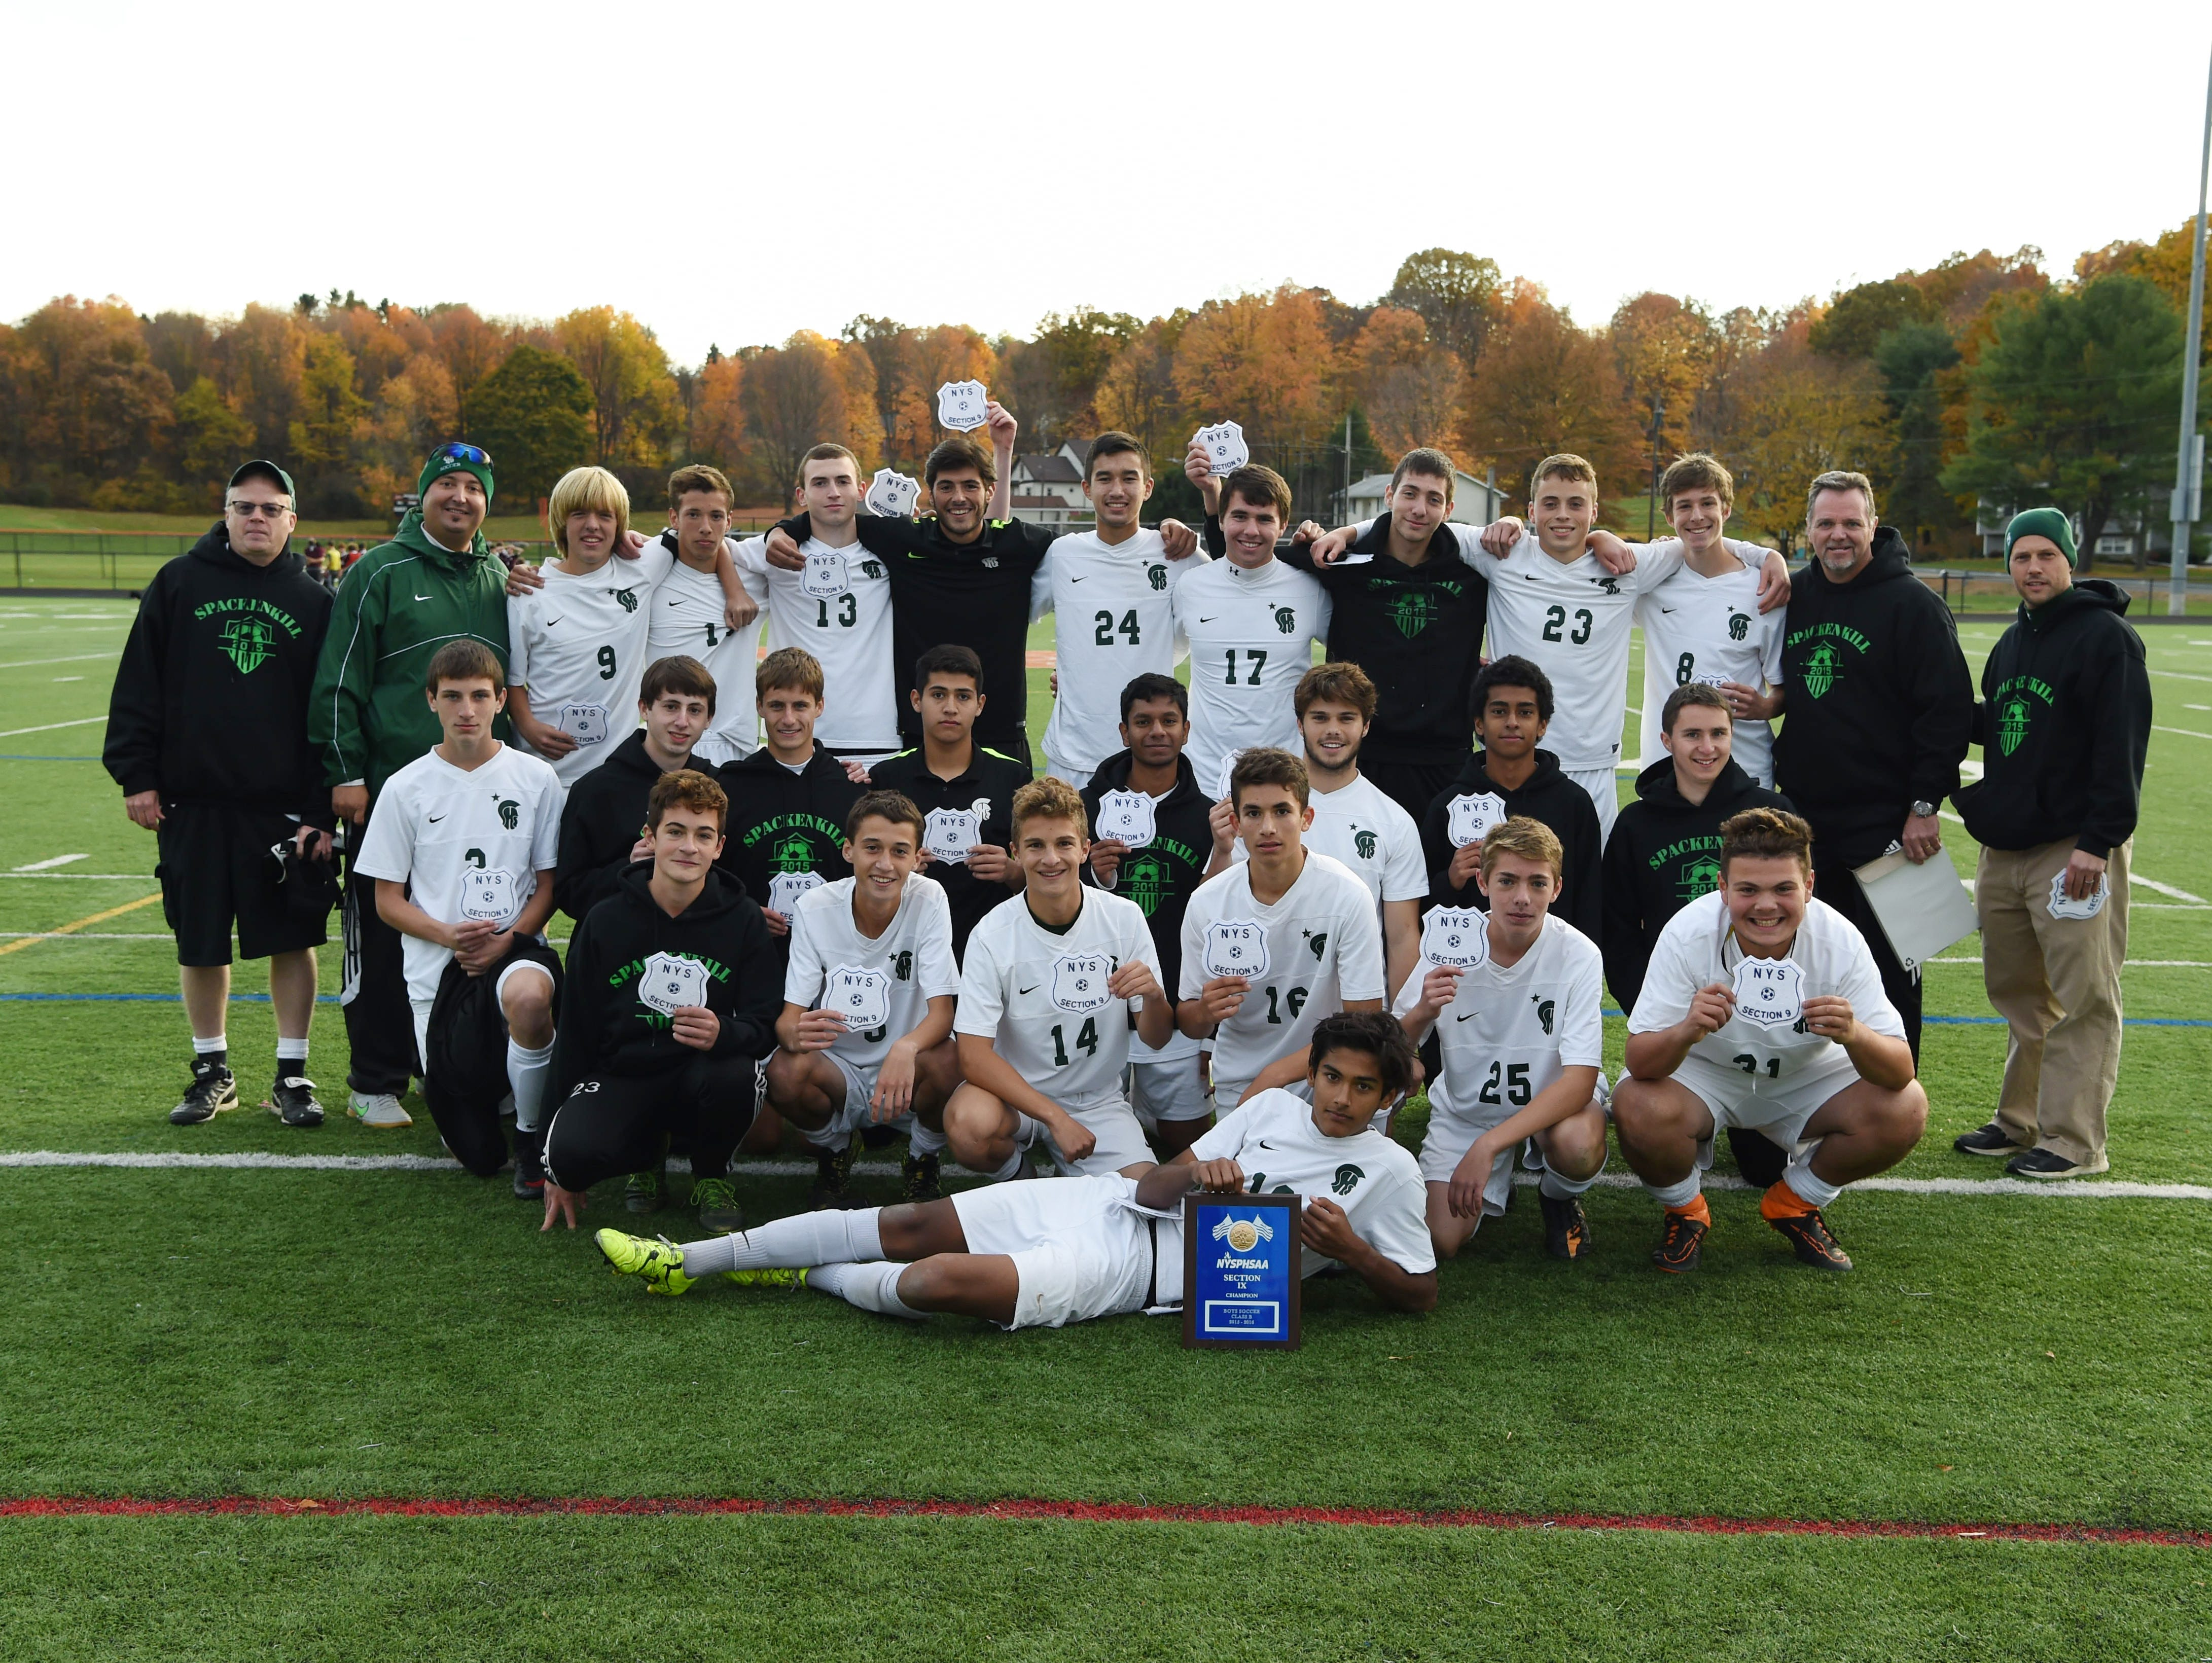 Spackenkill's boys soccer team after winning the Section 9 Class B final held in Marlboro on Saturday.